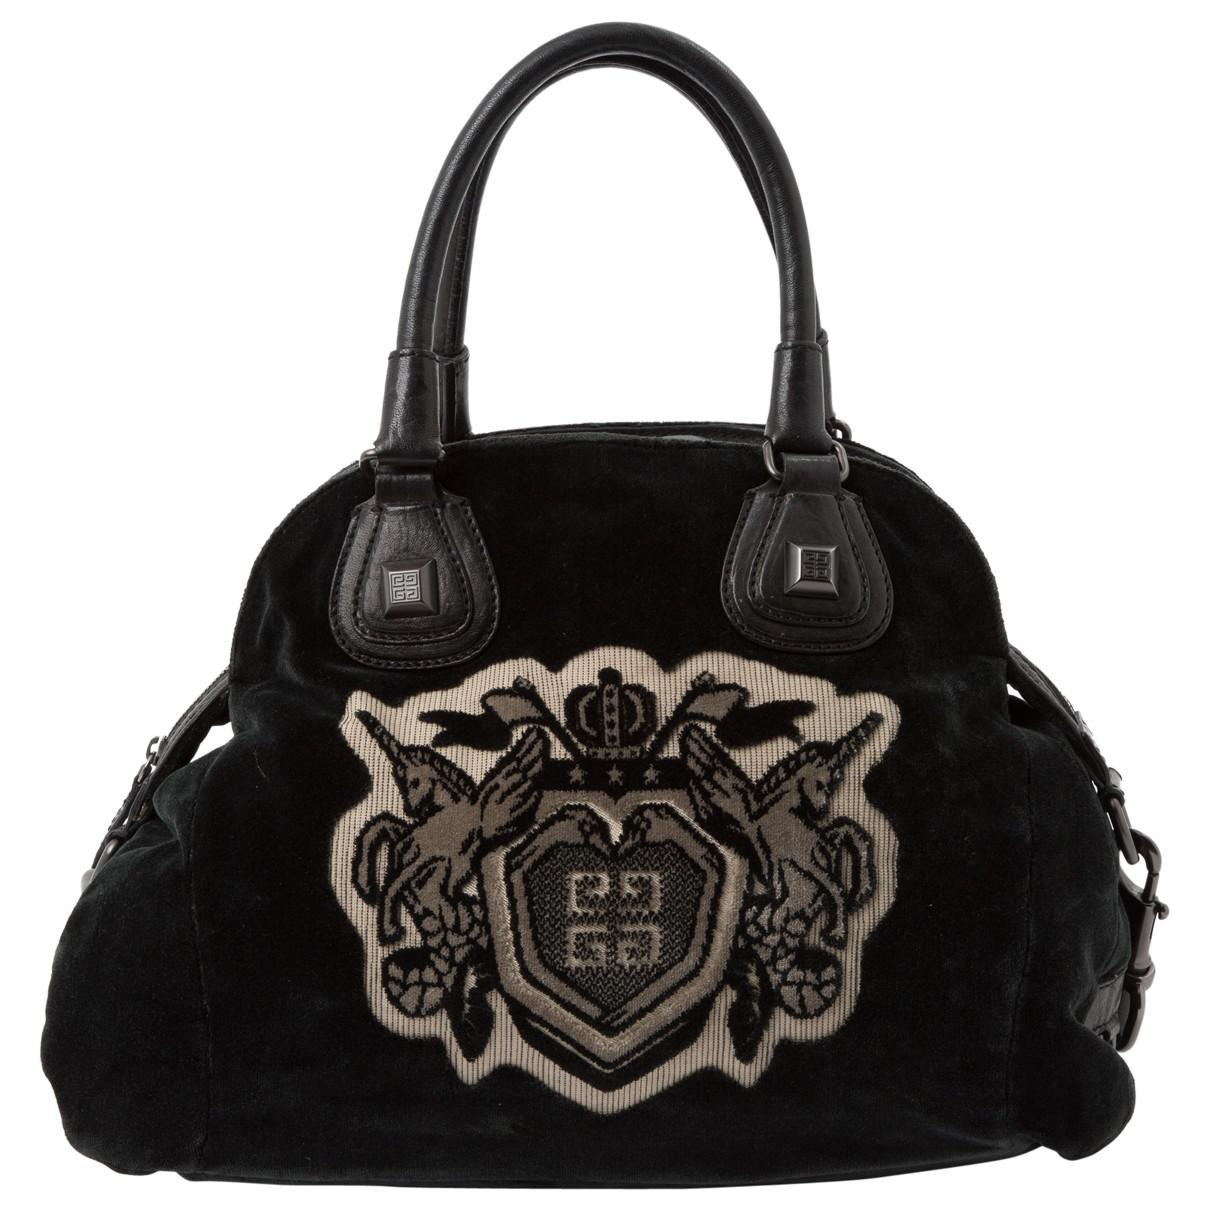 Givenchy Pre-owned - Nightingale leather bag bJfdEGt